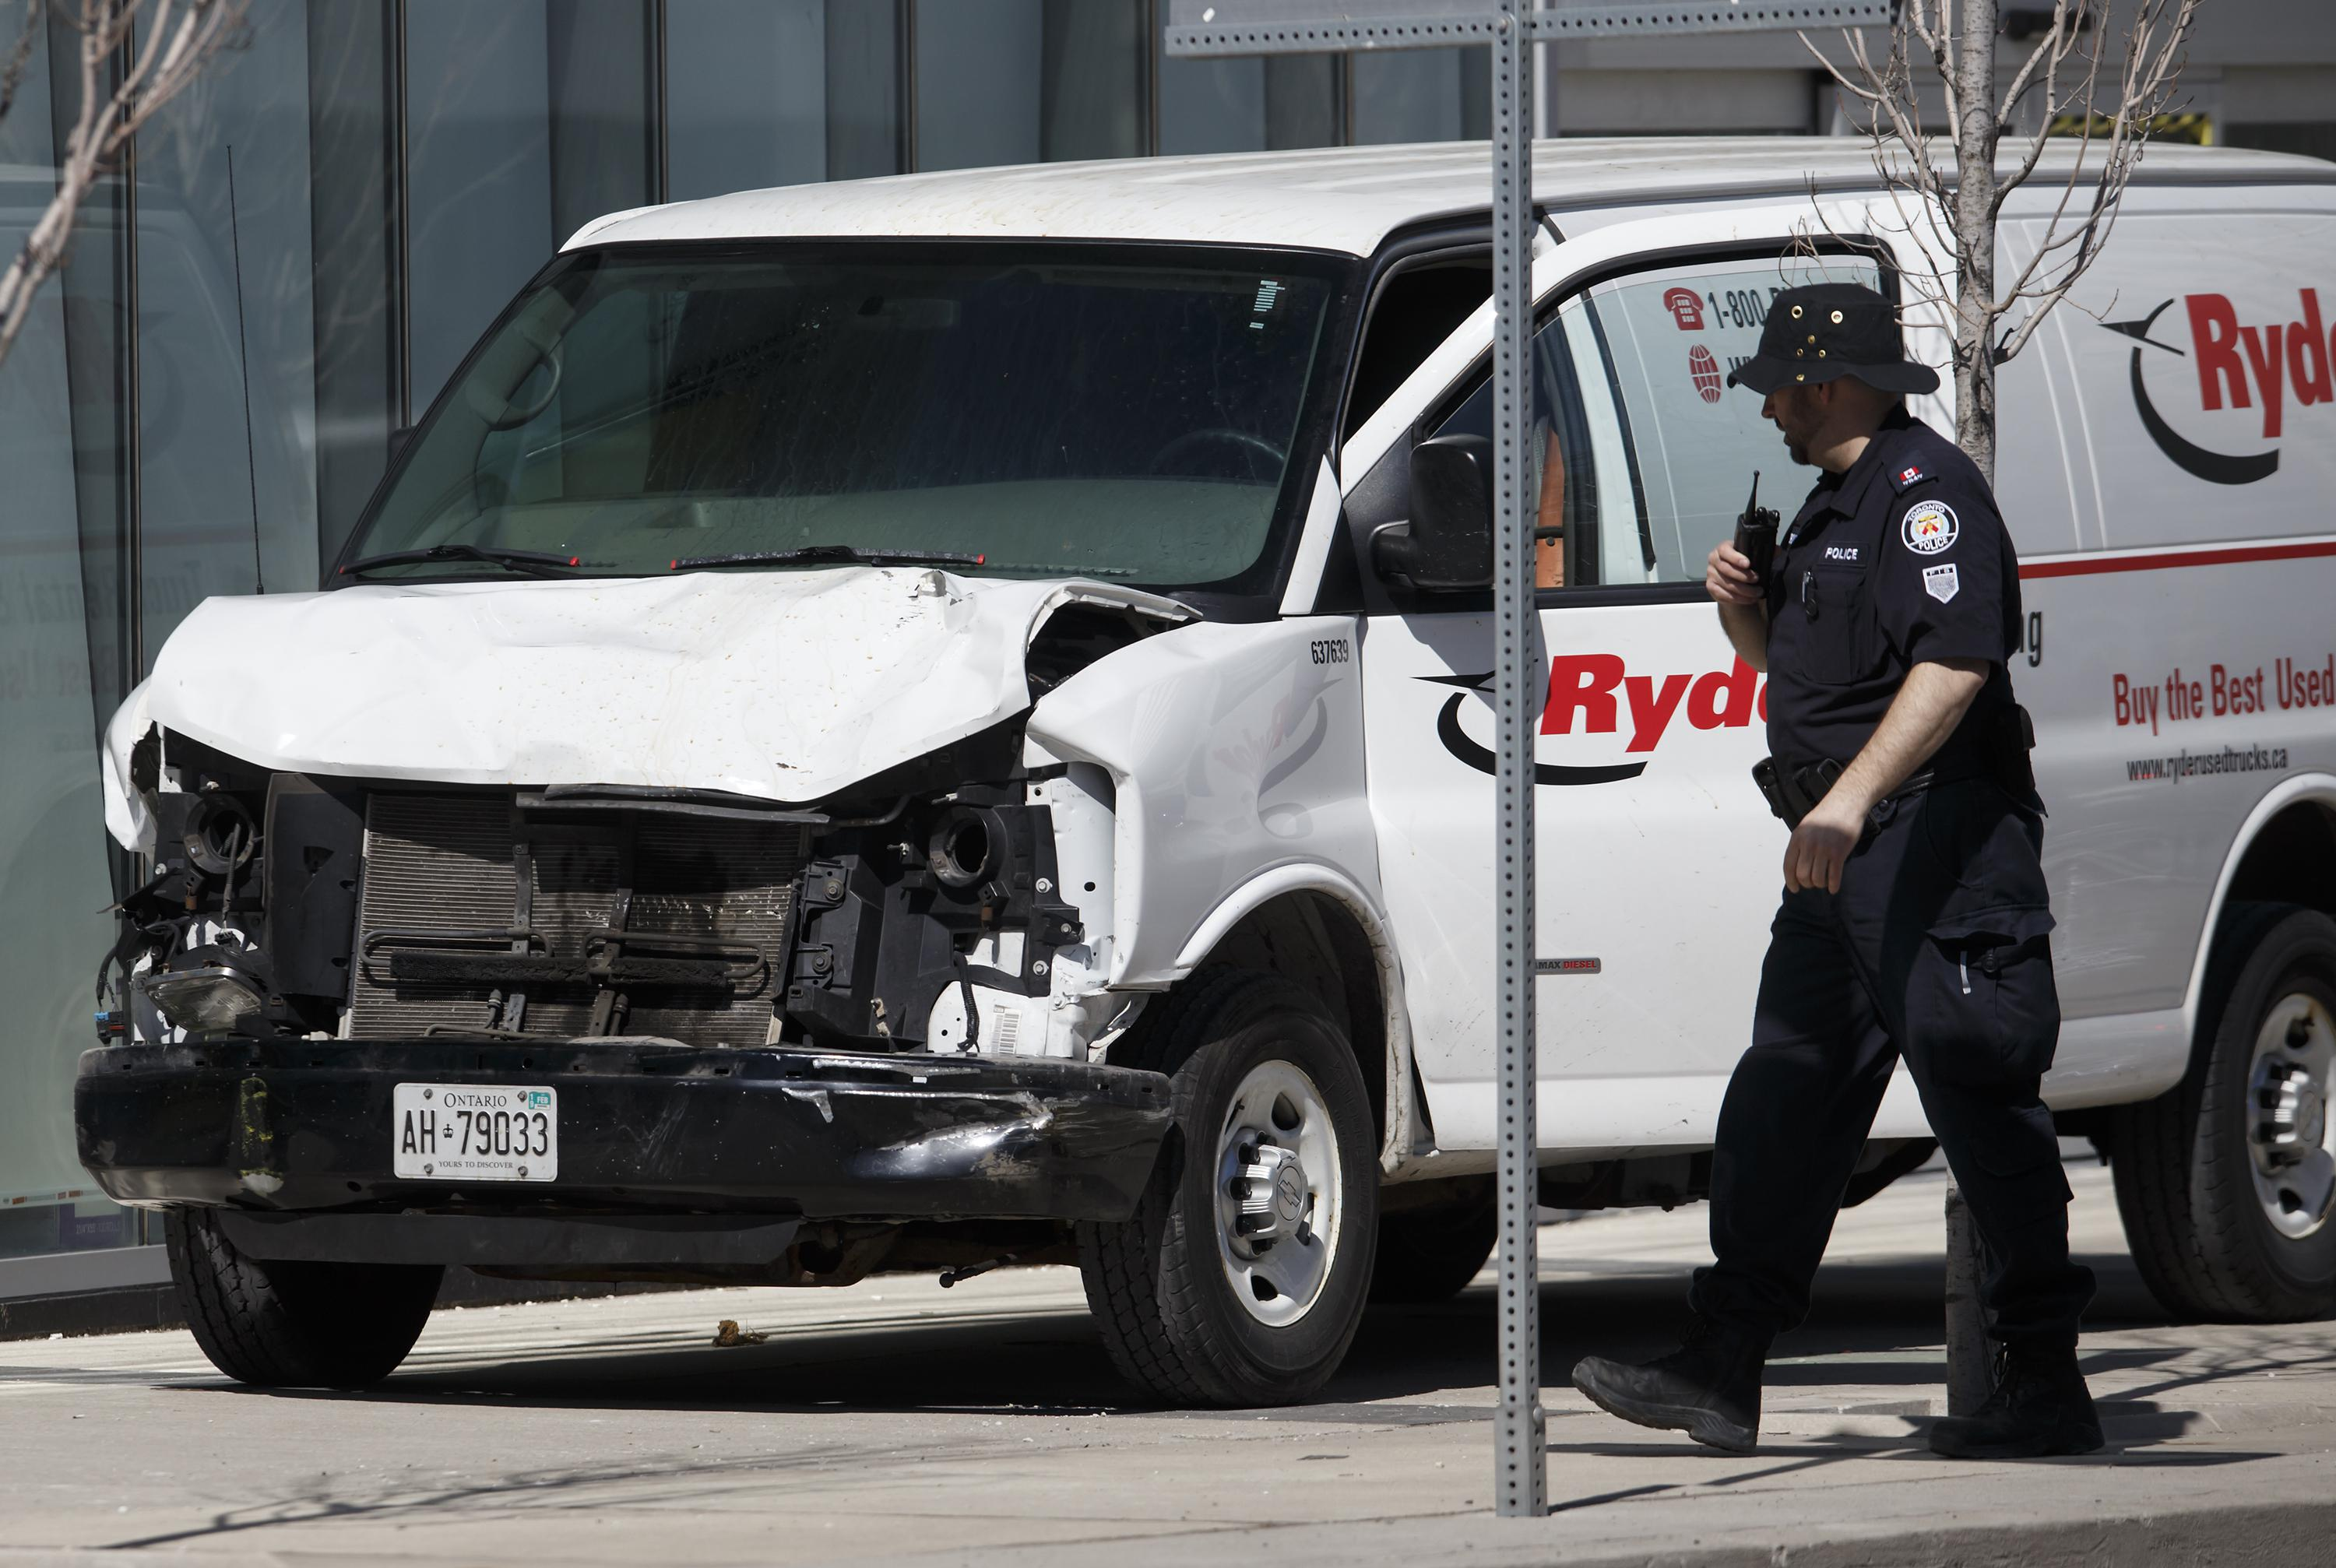 Police inspect a van suspected of being involved in a collision injuring at least eight people at Yonge St. and Finch Ave. on April 23, 2018 in Toronto, Canada.